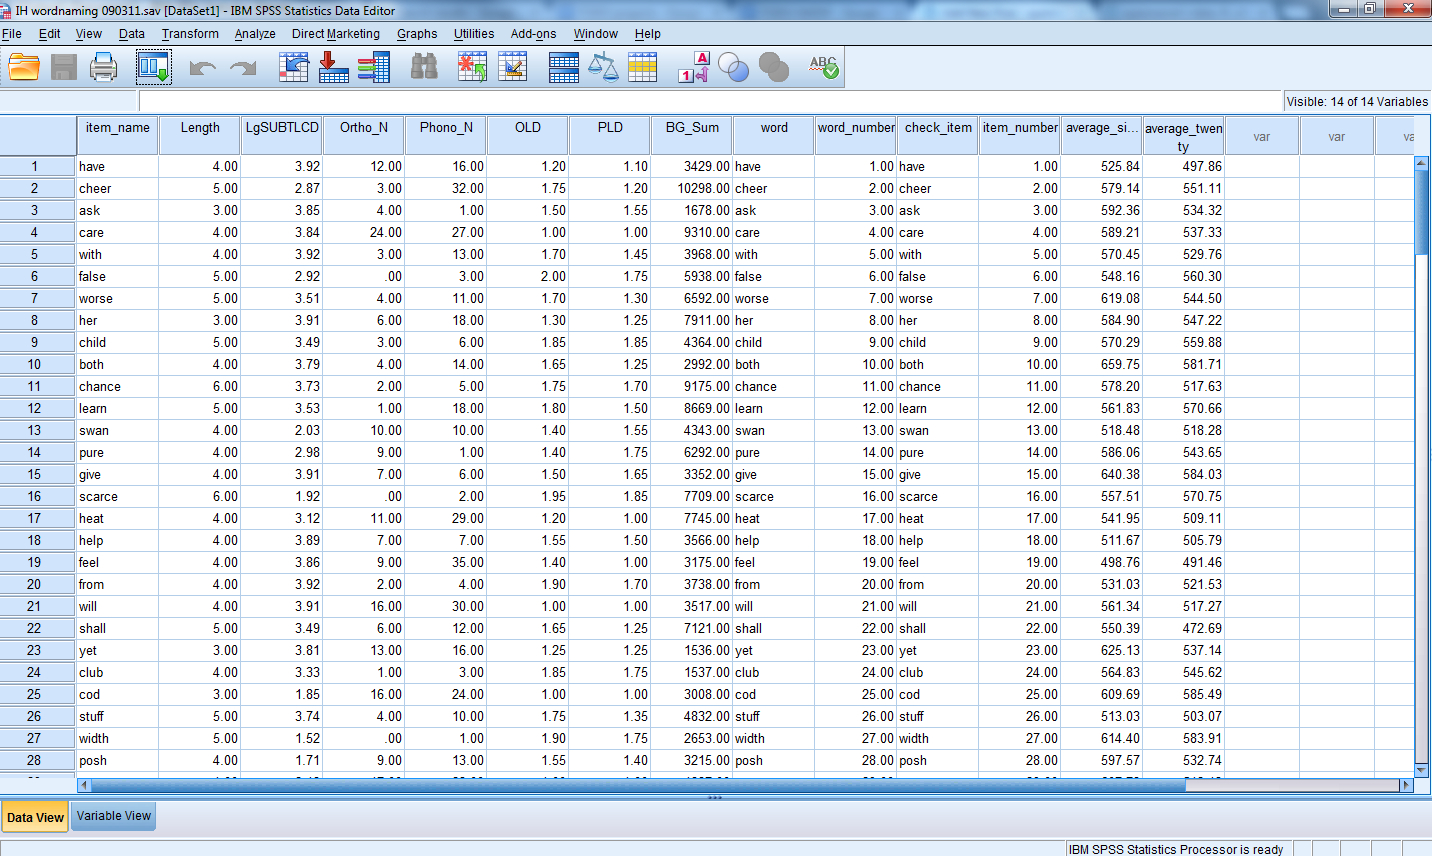 Spss Spreadsheet Regarding Getting Started – Recapping Basics, Adding Foundational Knowledge